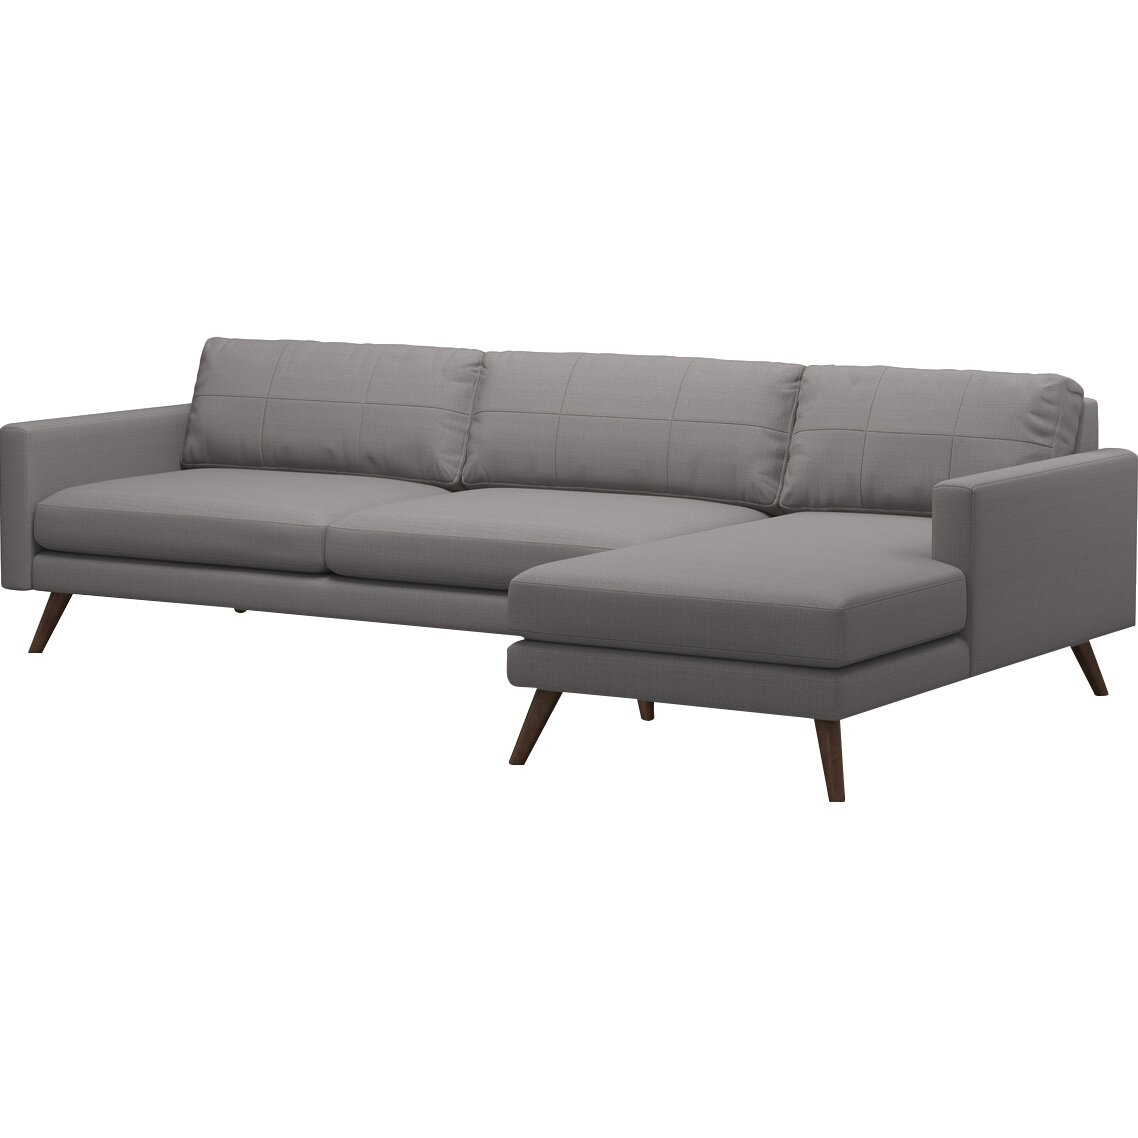 Truemodern Dane 116 Sofa With Chaise Wayfair